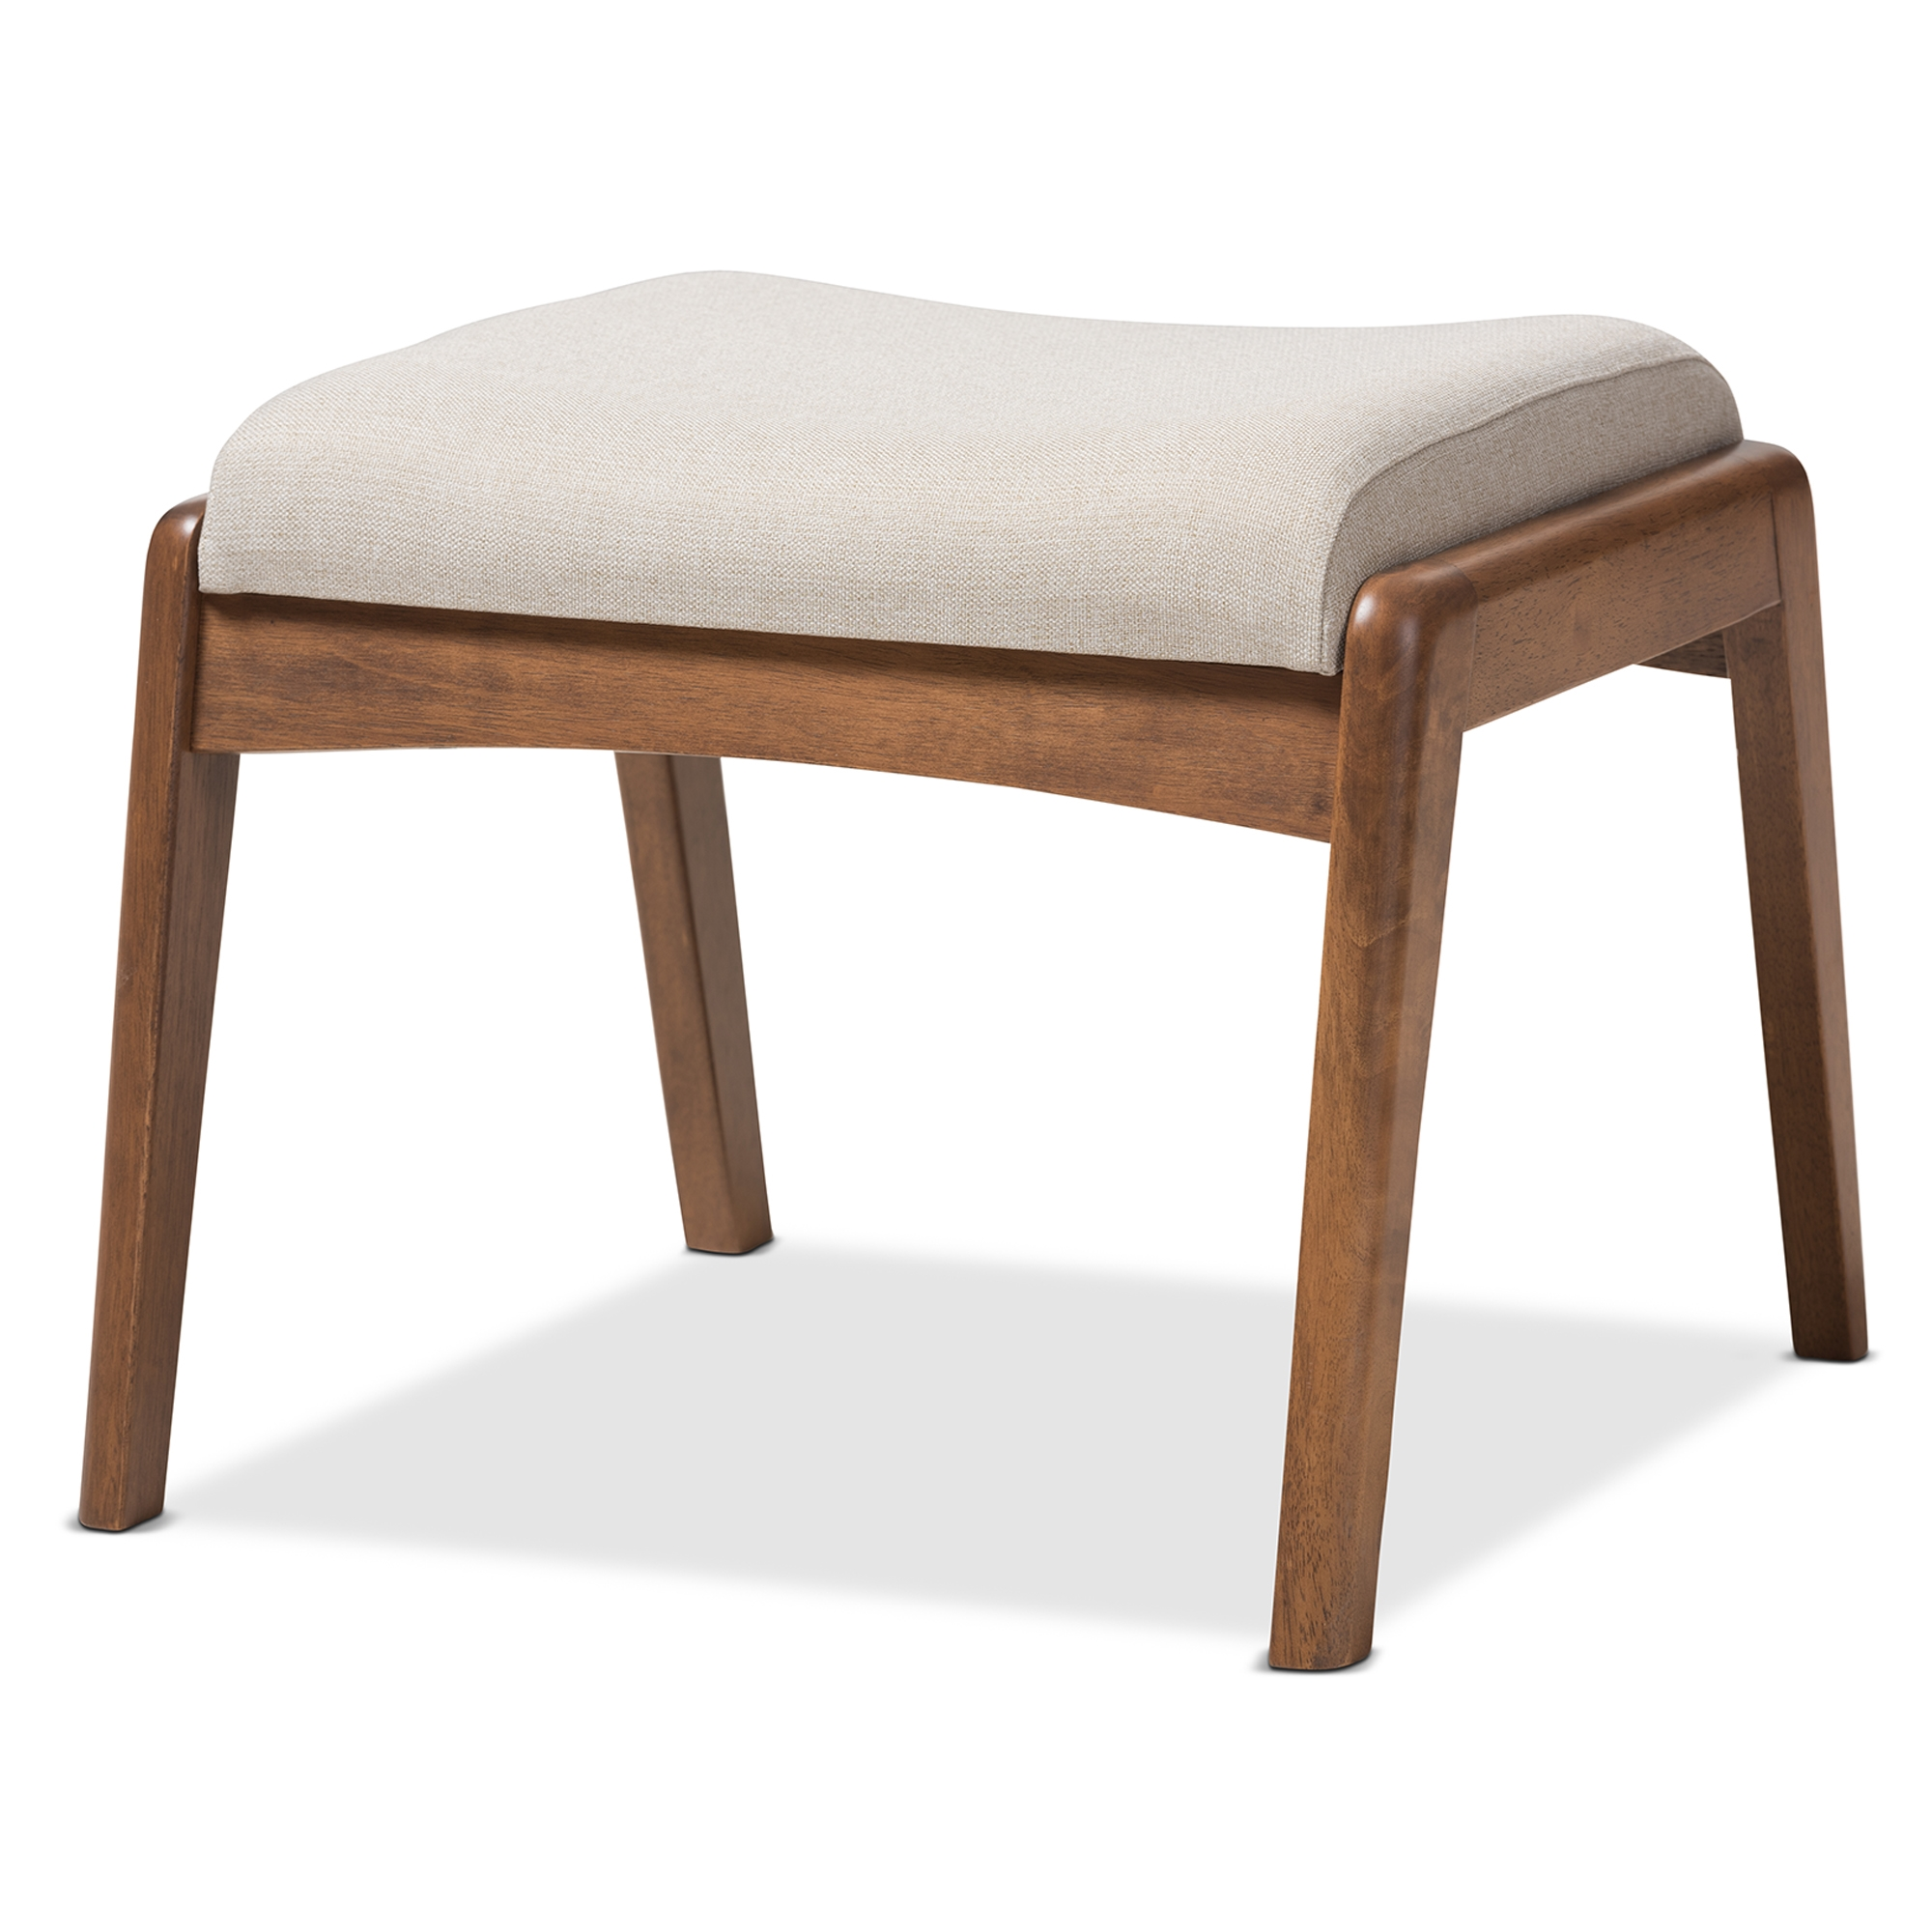 Baxton Studio Roxy Mid Century Modern Walnut Wood Finishing And Light Beige  Fabric Upholstered Ottoman